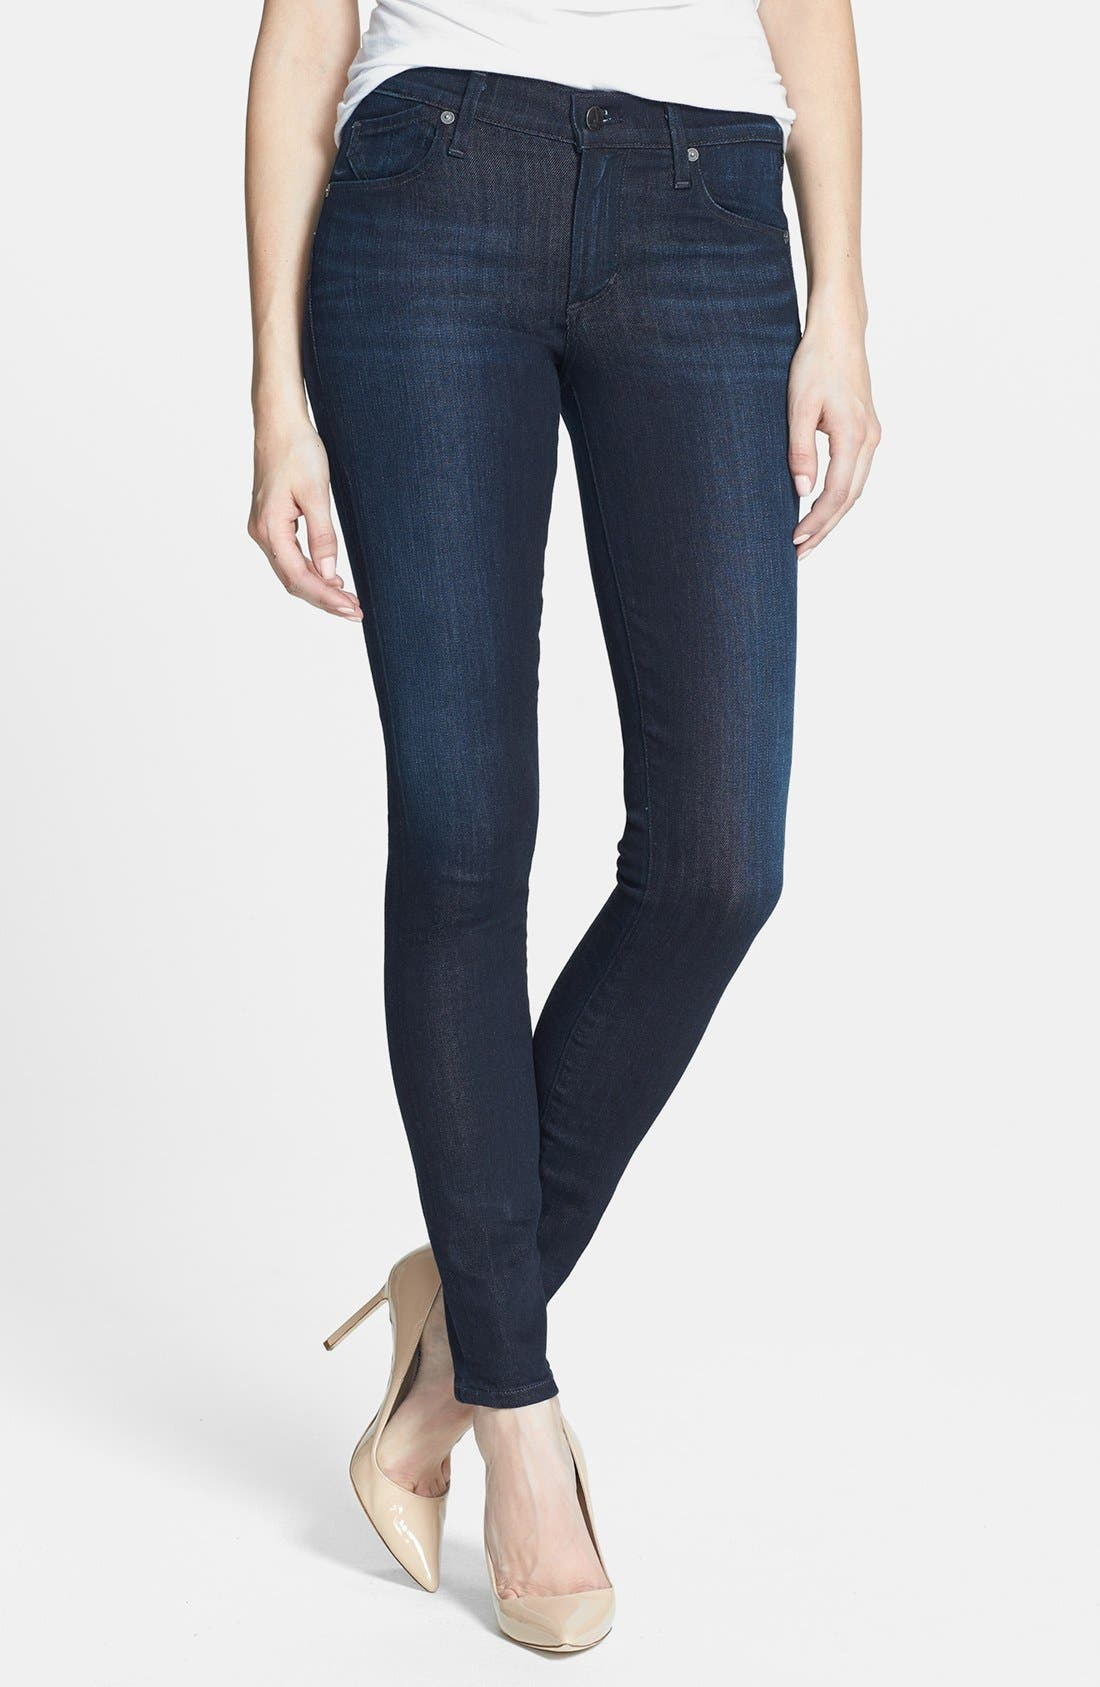 Alternate Image 1 Selected - Citizens of Humanity Ultra Skinny Jeans (Space)